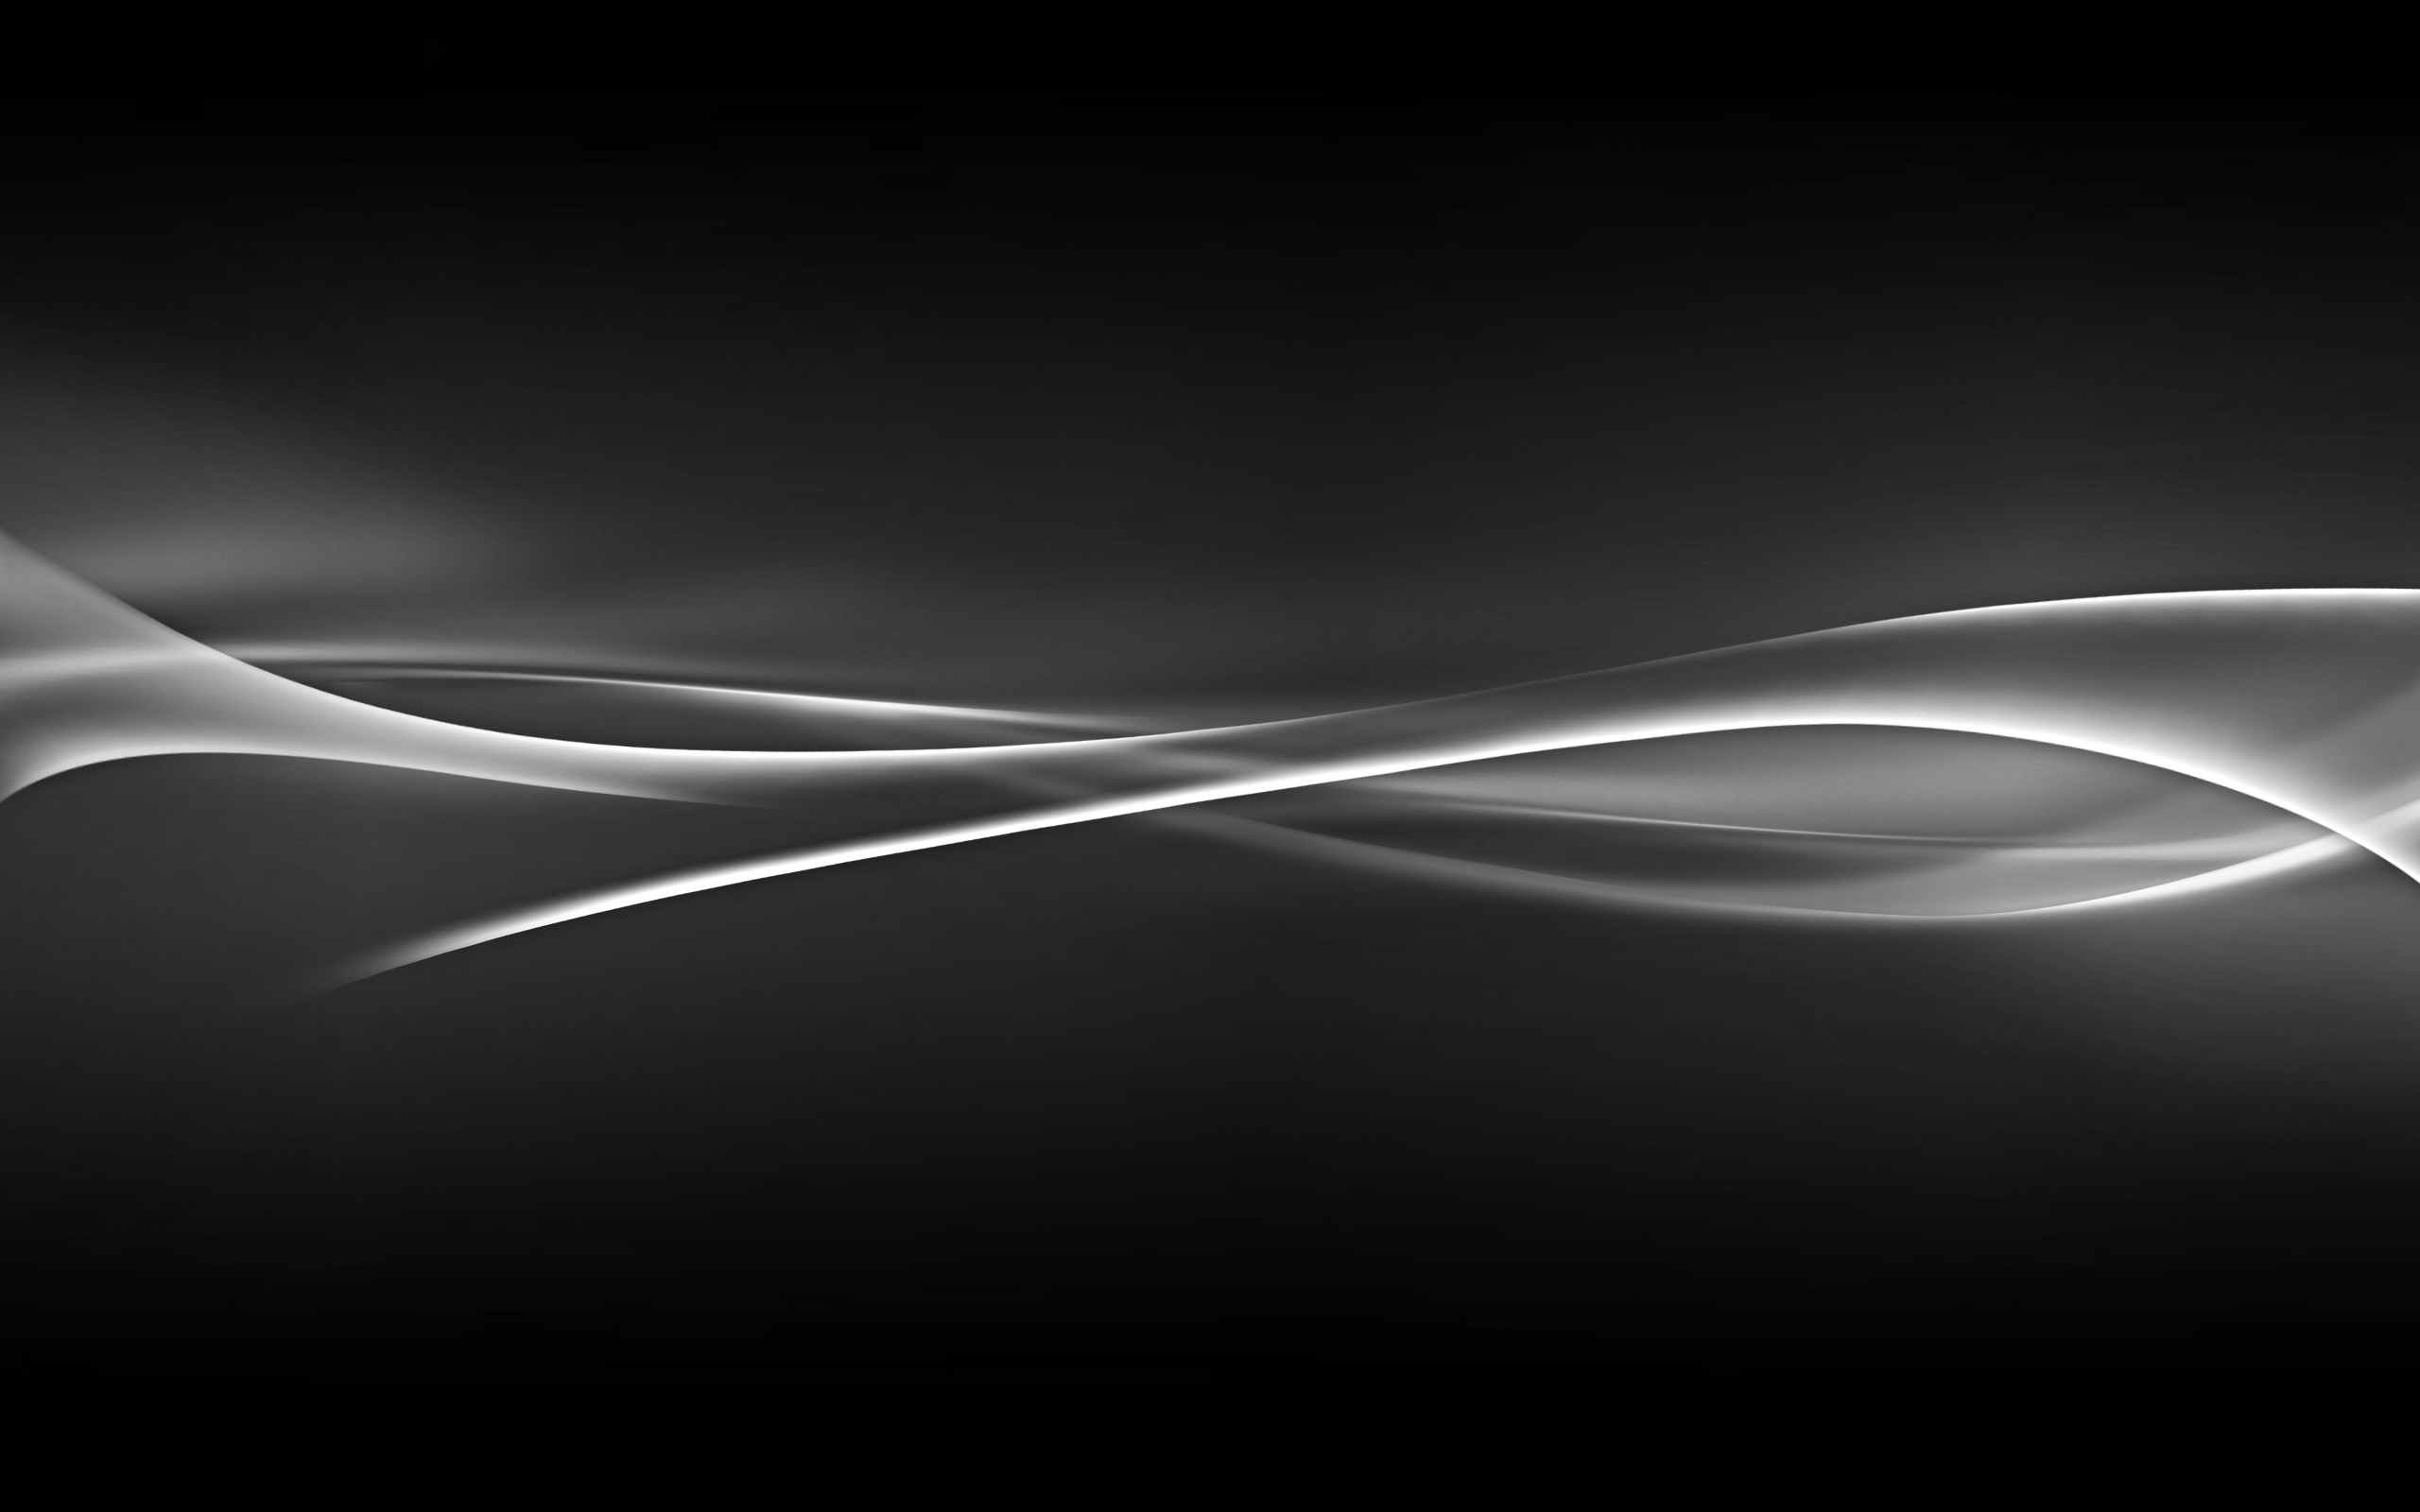 and white abstract swirls hd wallpaper background HD Wallpapers 2560x1600